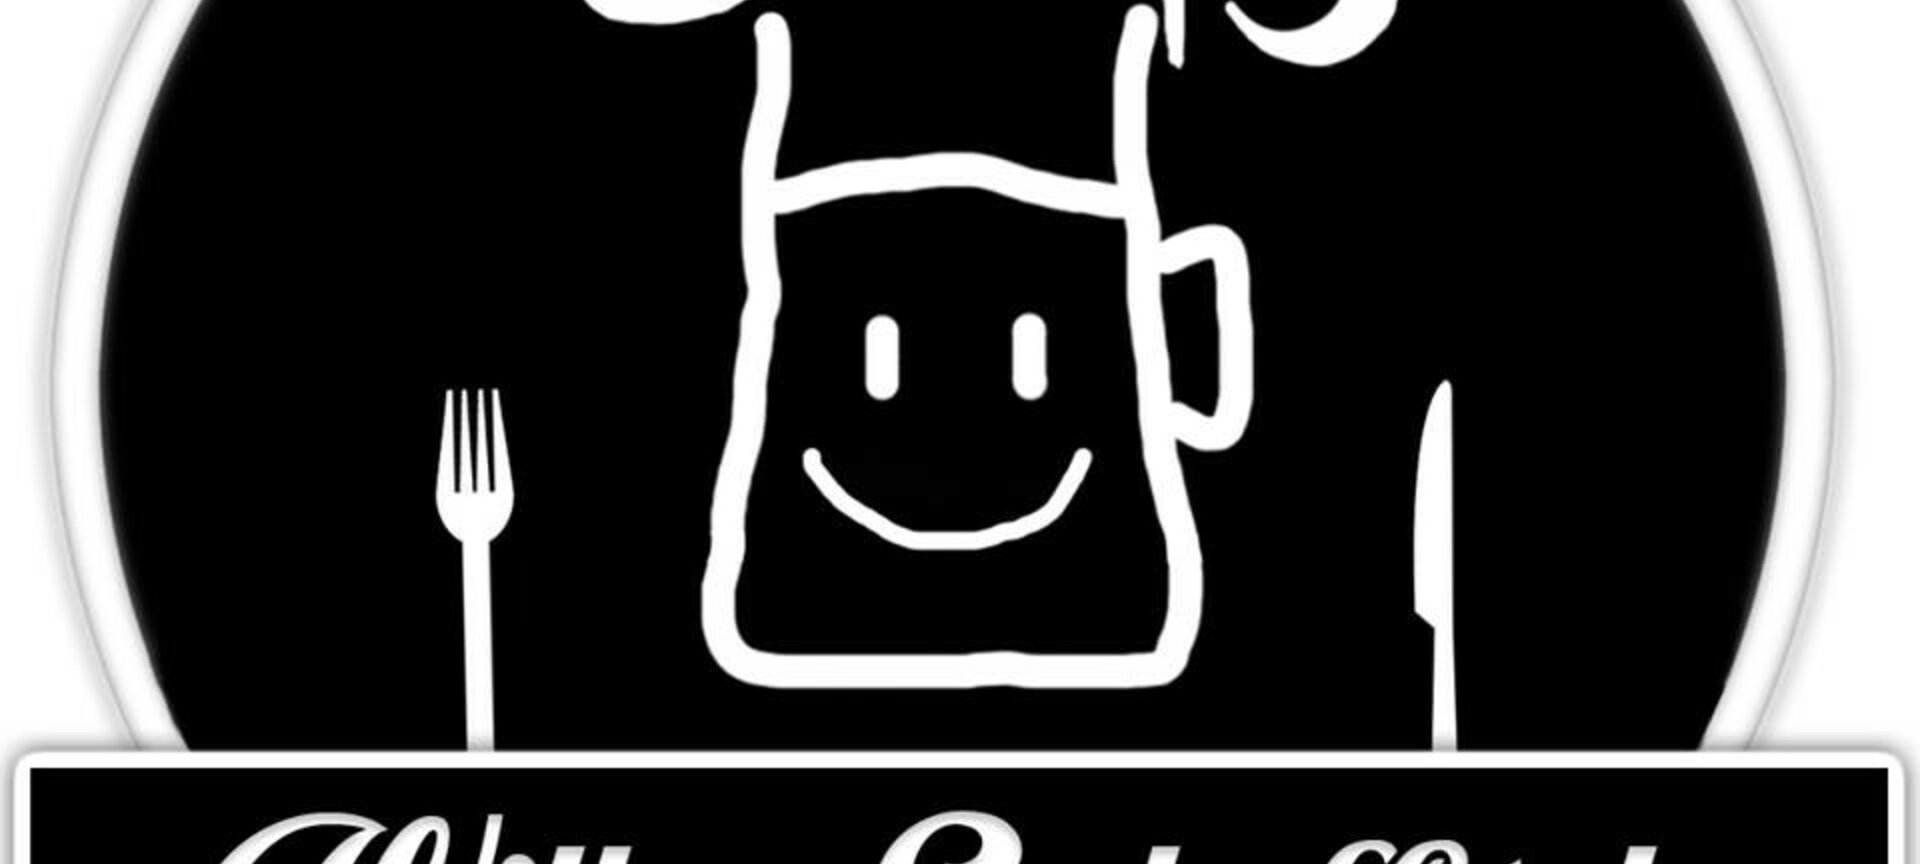 Willers Eetkaffee - ons logo